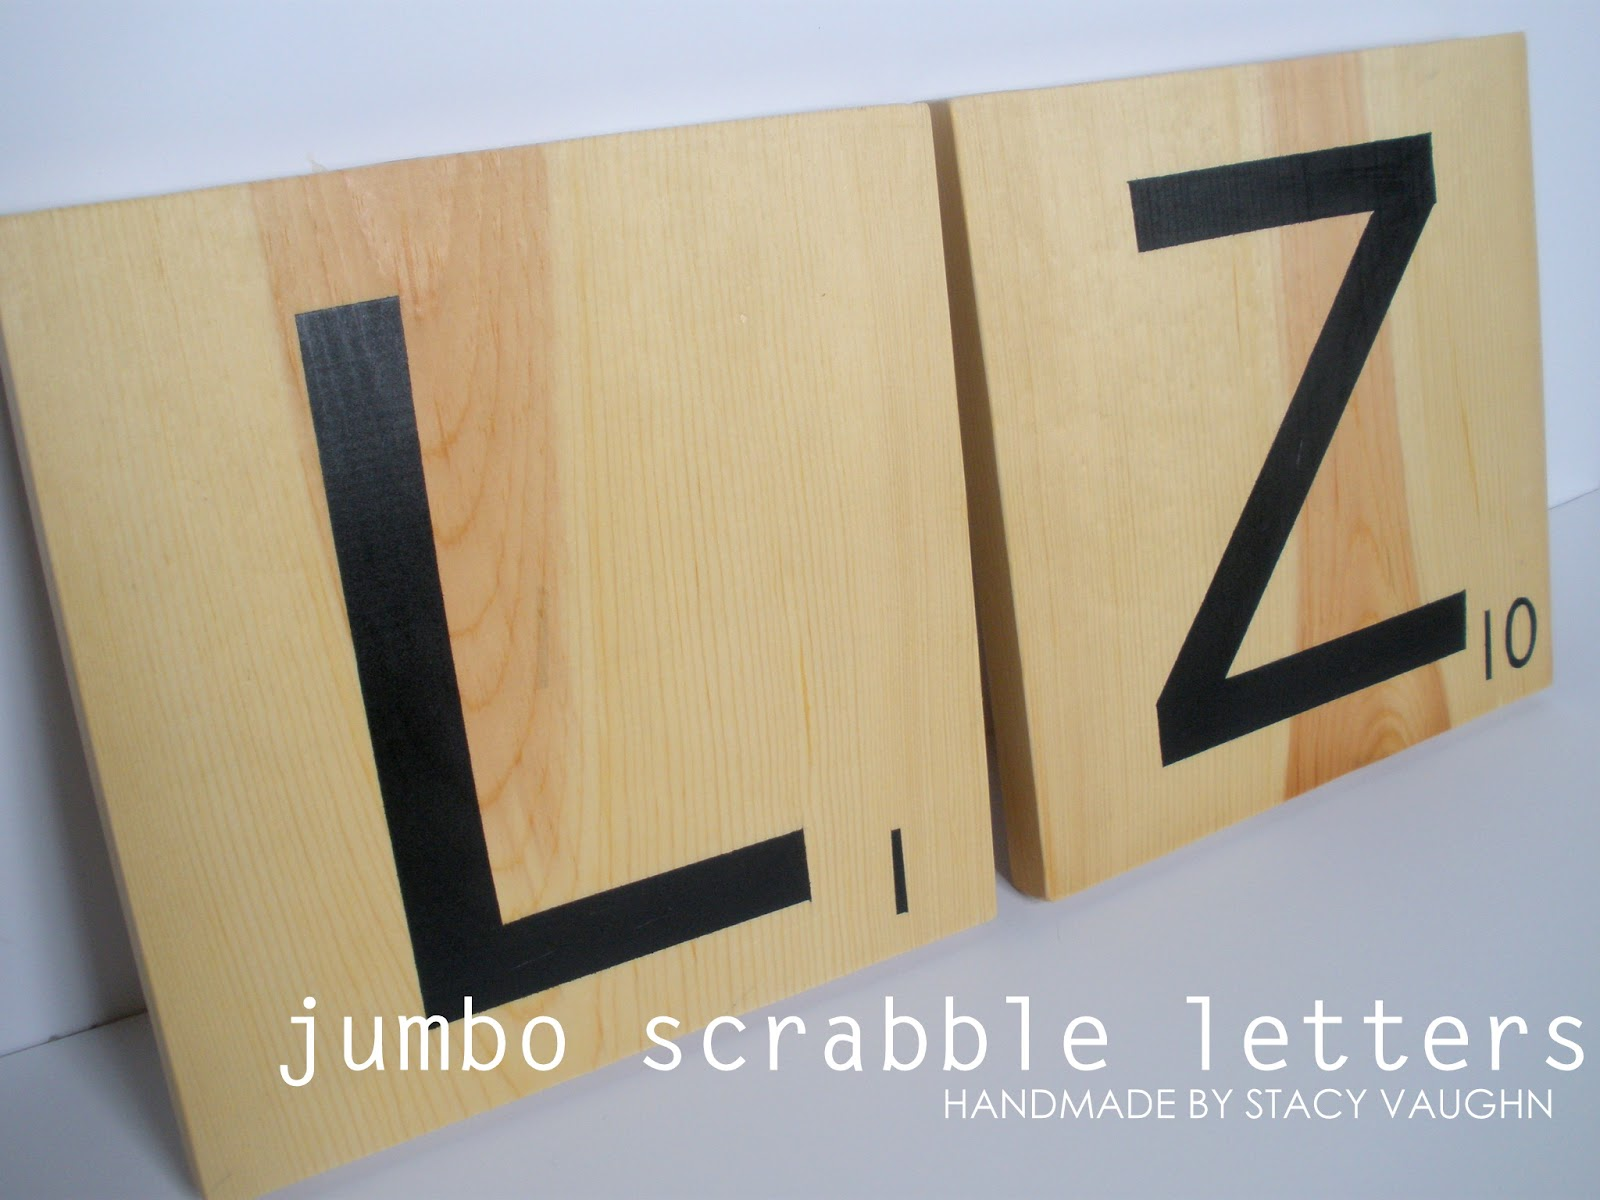 Scrabble Letter Wall Decor Bathroom Wall Decorations Wall Art Letters